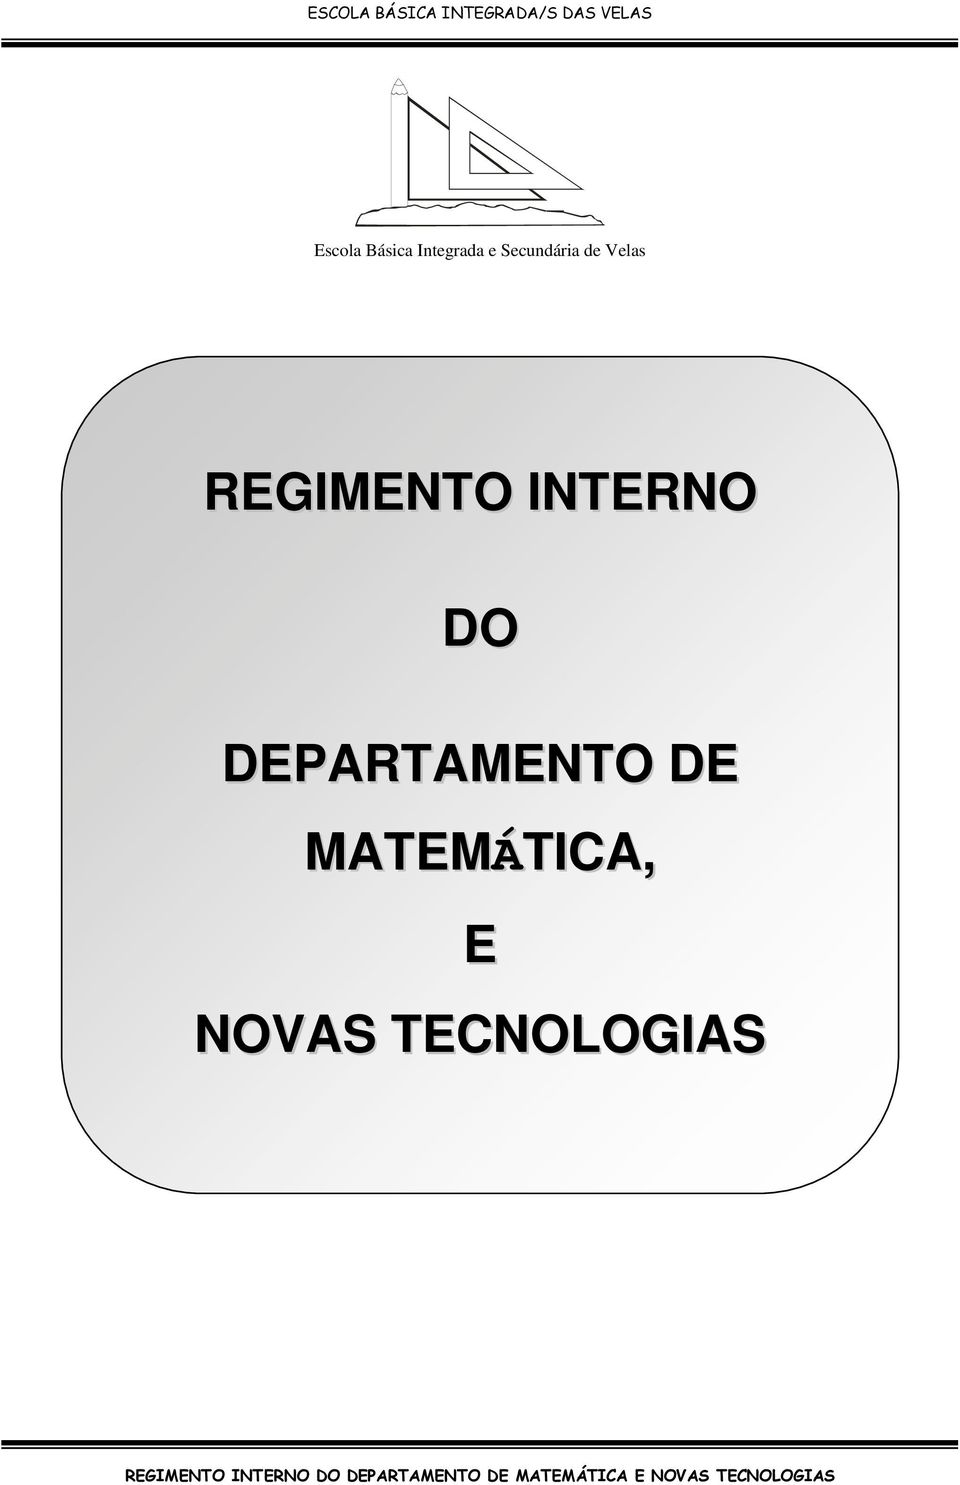 REGIMENTO INTERNO DO